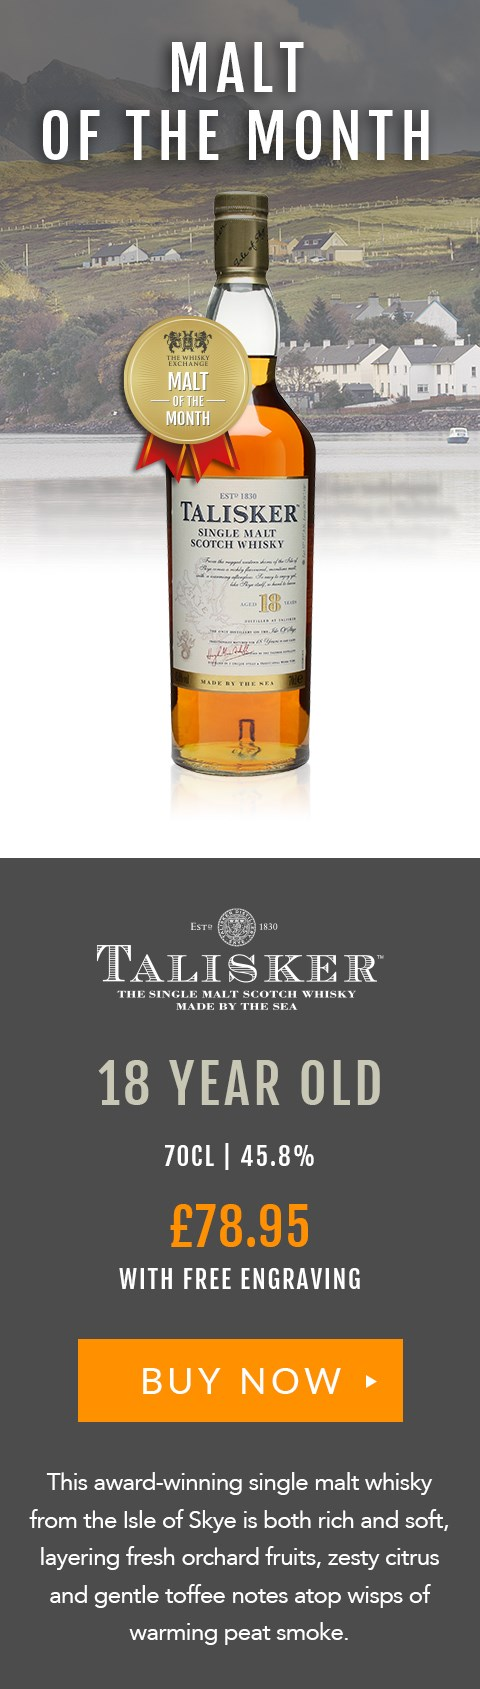 MALT OF THE MONTH  Talisker 18 Year Old  70cl | 45.8%  £78.95  Free engraving  BUY NOW > https://www.thewhiskyexchange.com/feature/maltofthemonth  This award-winning single malt whisky from the Isle of Skye is both rich and soft, layering fresh orchard fruits, zesty citrus and gentle toffee notes atop notes of smouldering peat smoke.